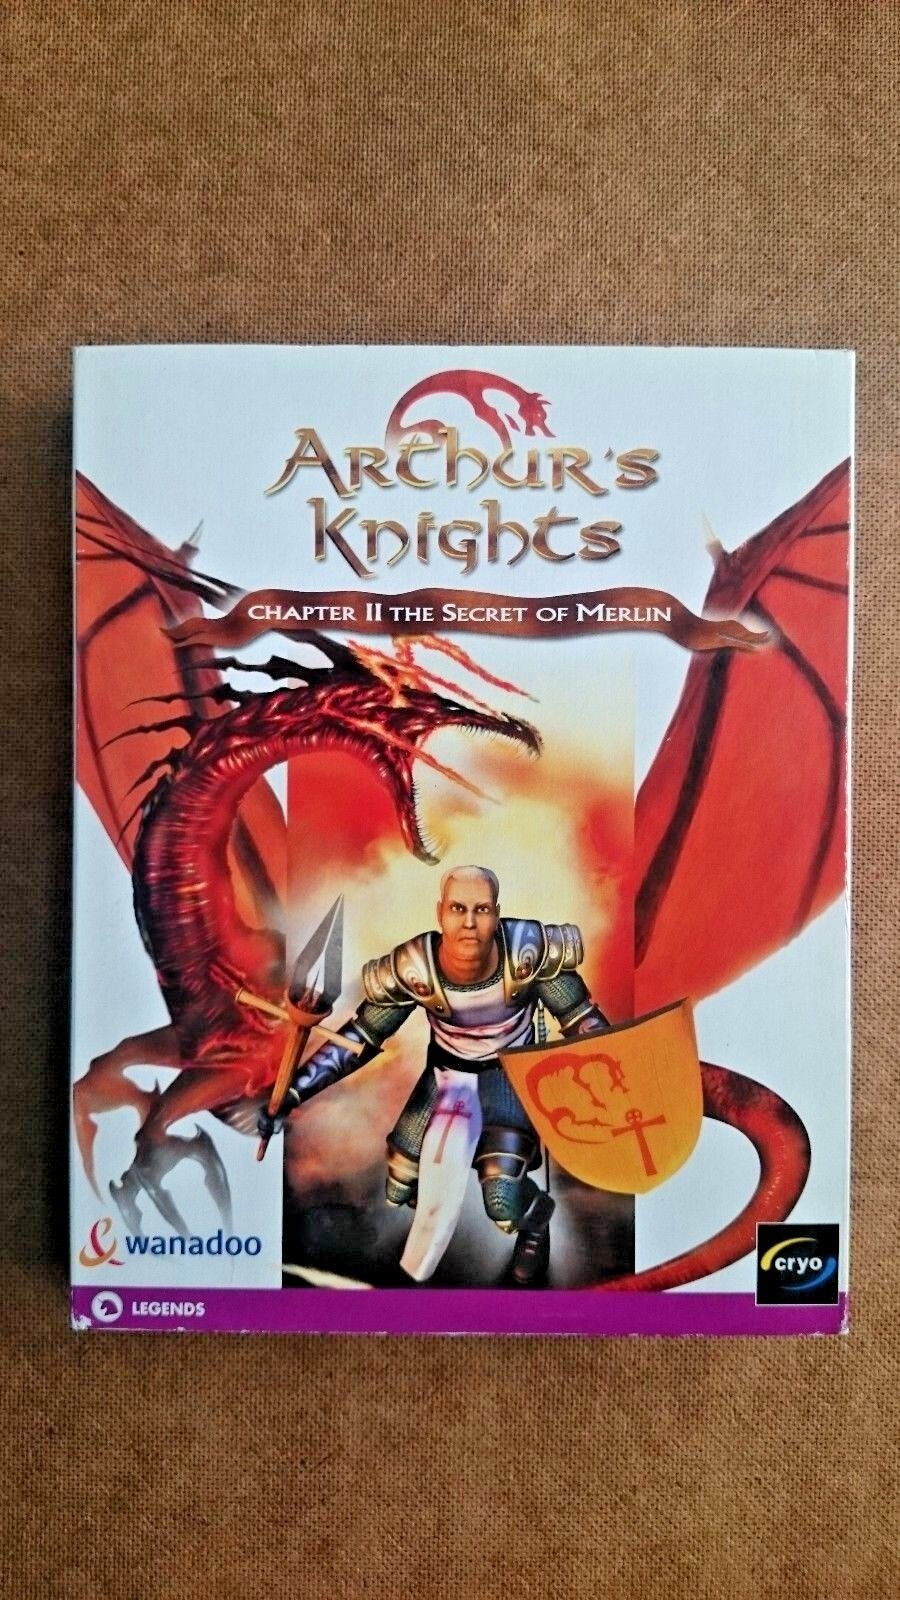 Arthurs Knights  Chapter 2 The Secret of Merlin (PC 2001) - BIG BOX  EDT